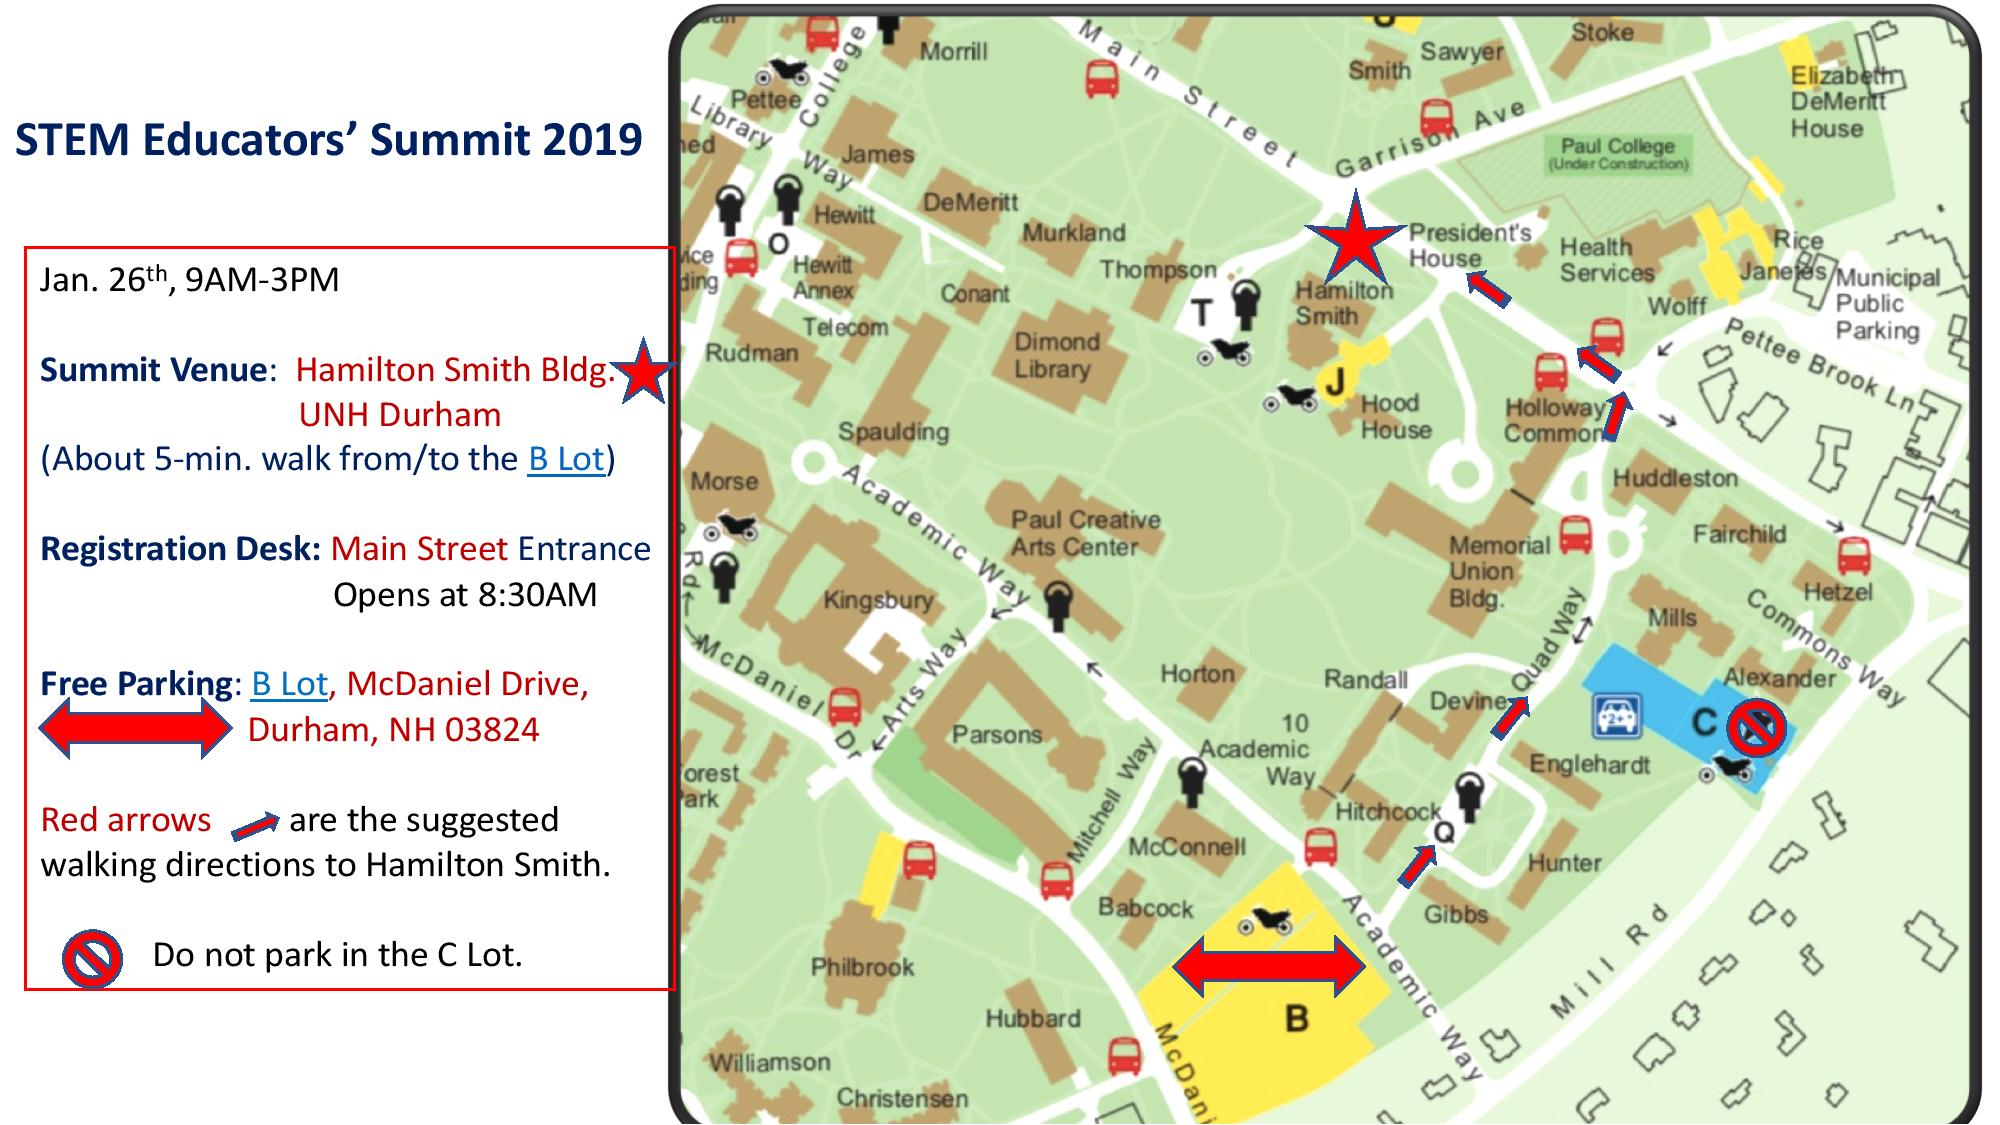 Campus map with B-lot and Hamilton Smith marked and a walking path marked between the two